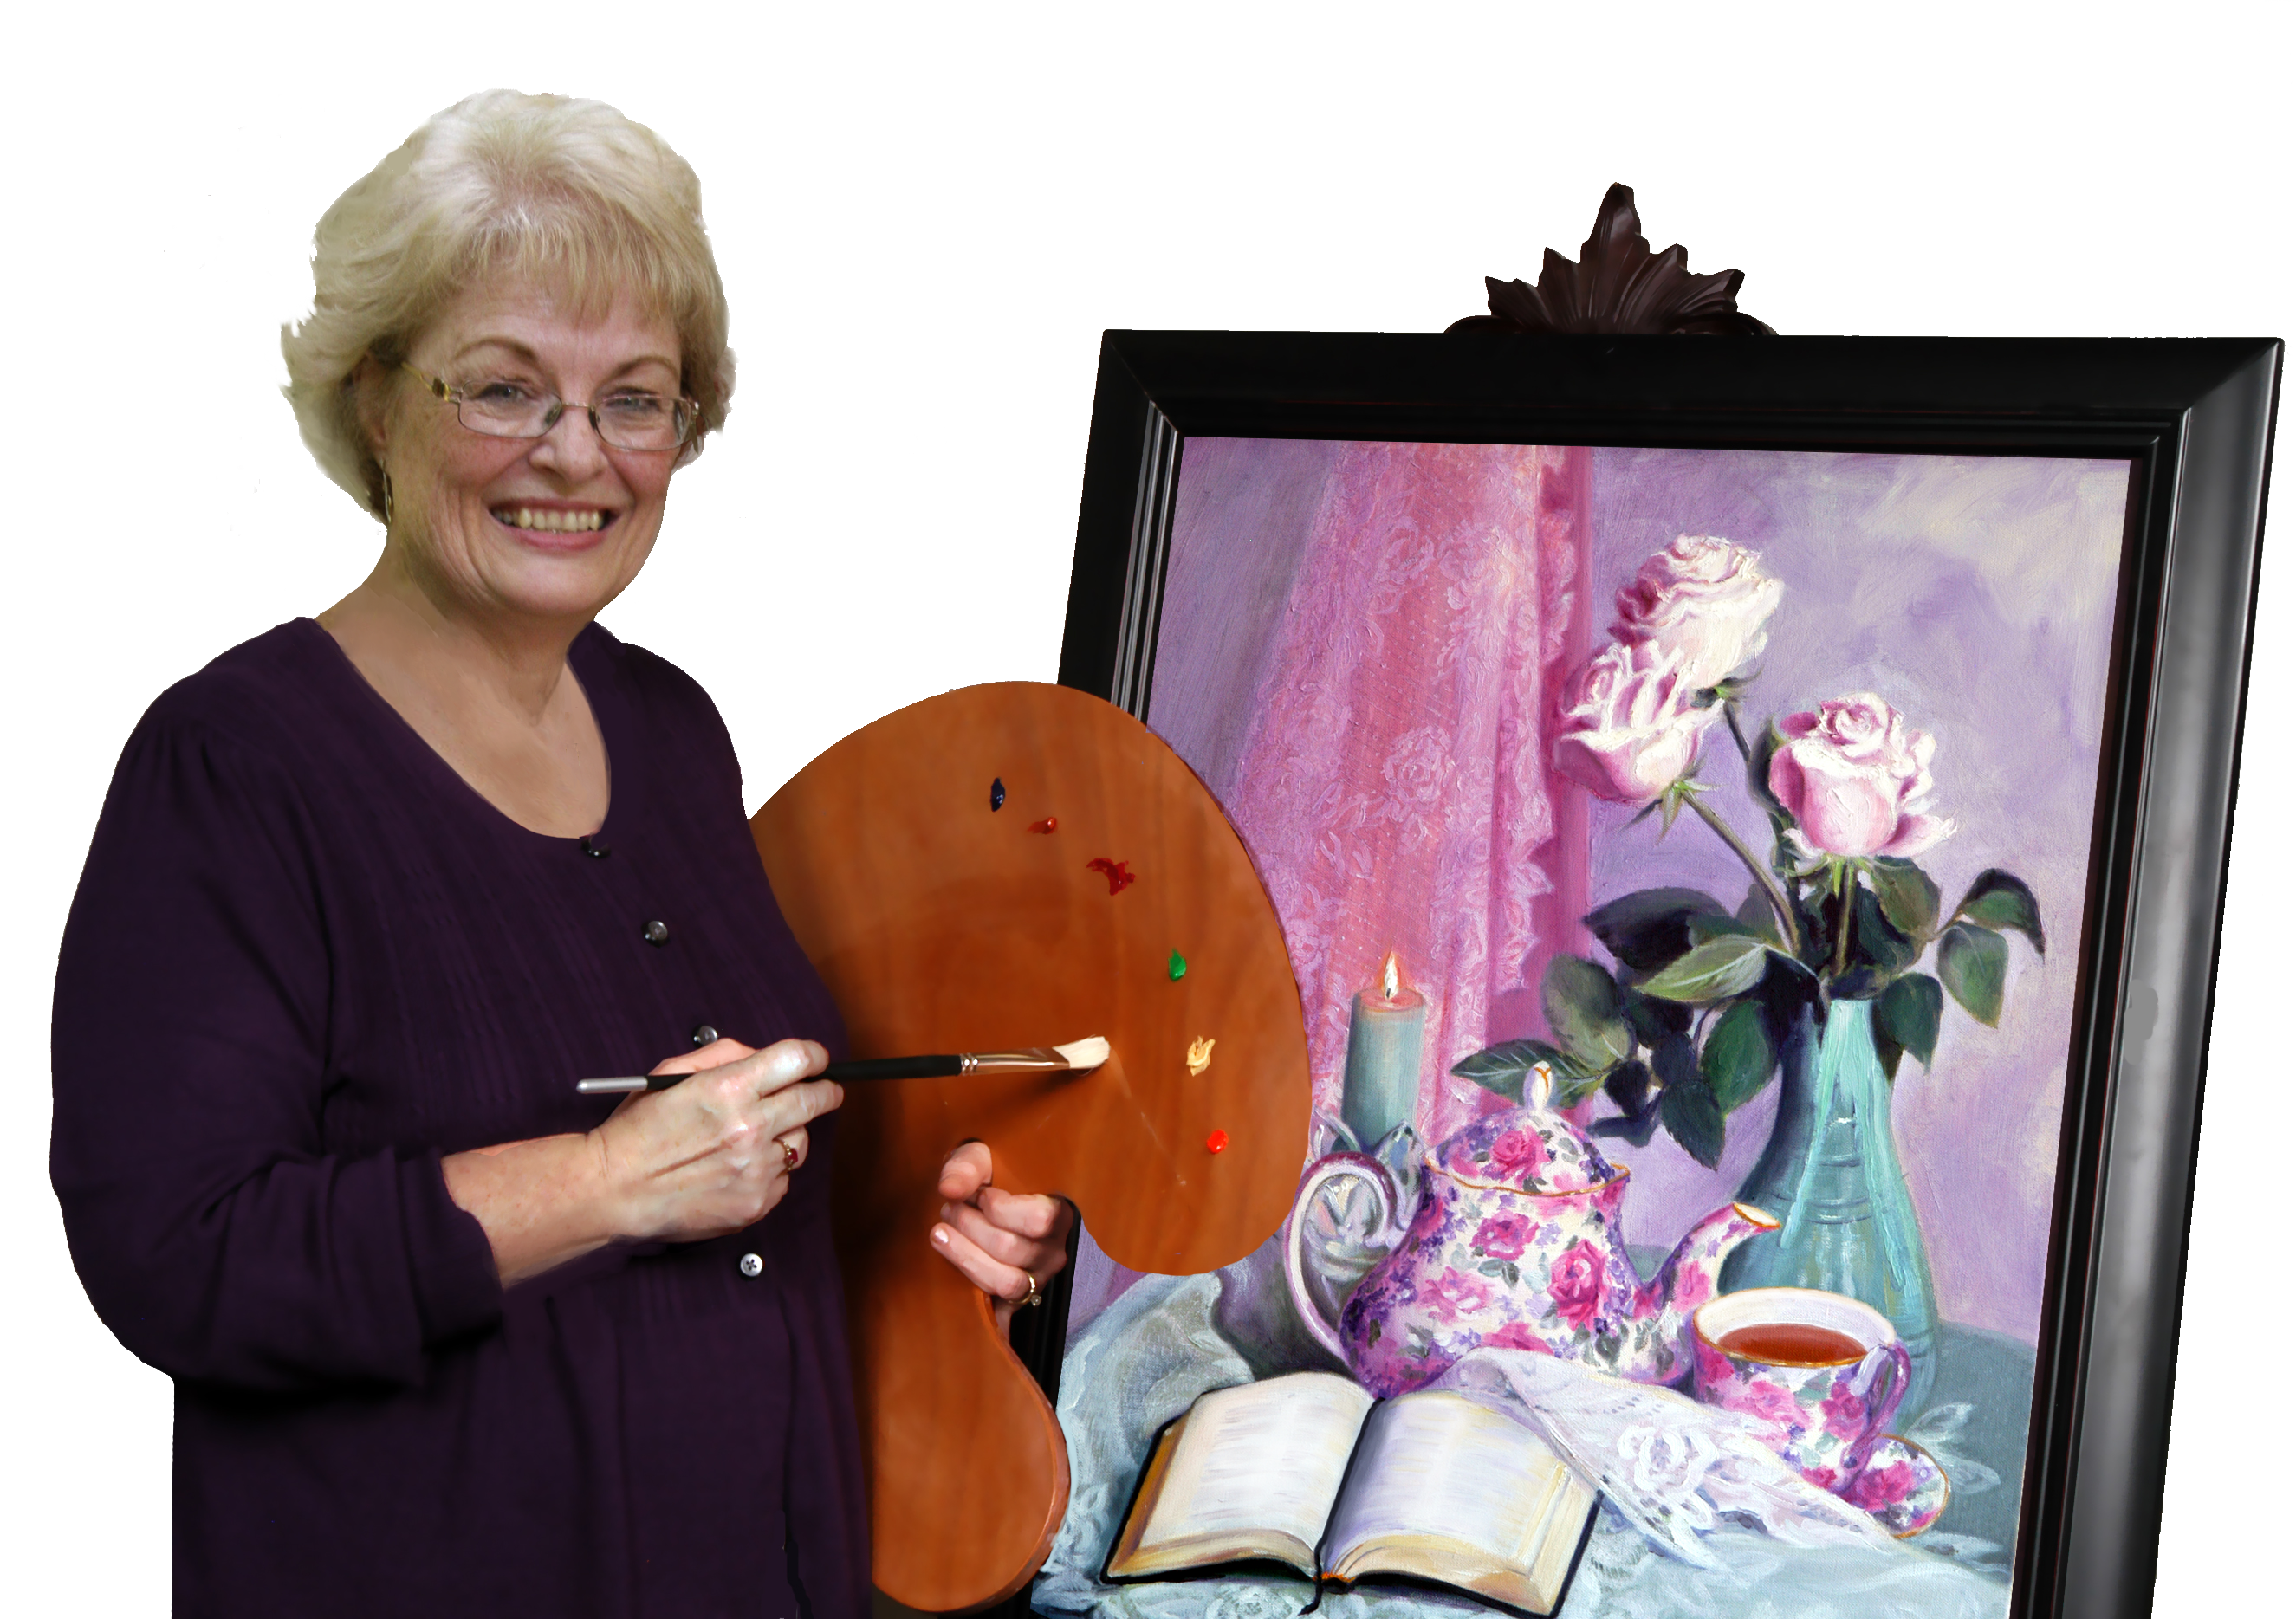 Sharon Hofer, Art Instructor